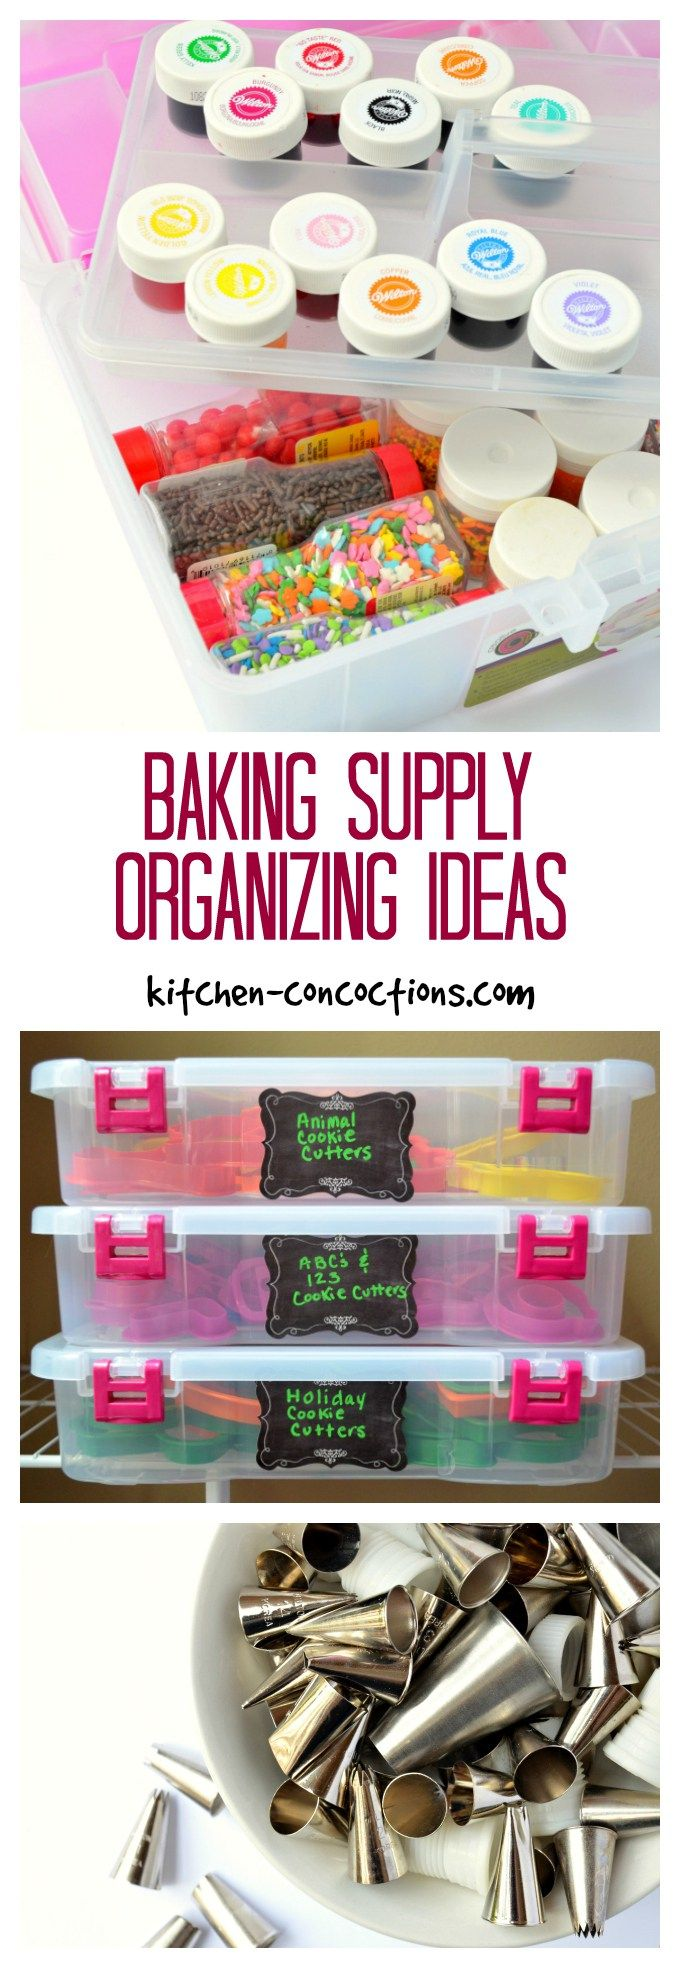 Baking Supply Organizing Ideas If You Are An Avid Cake Baker And Cookie Decorator All Those Supplies Can Quickly Take Over Your Kitchen